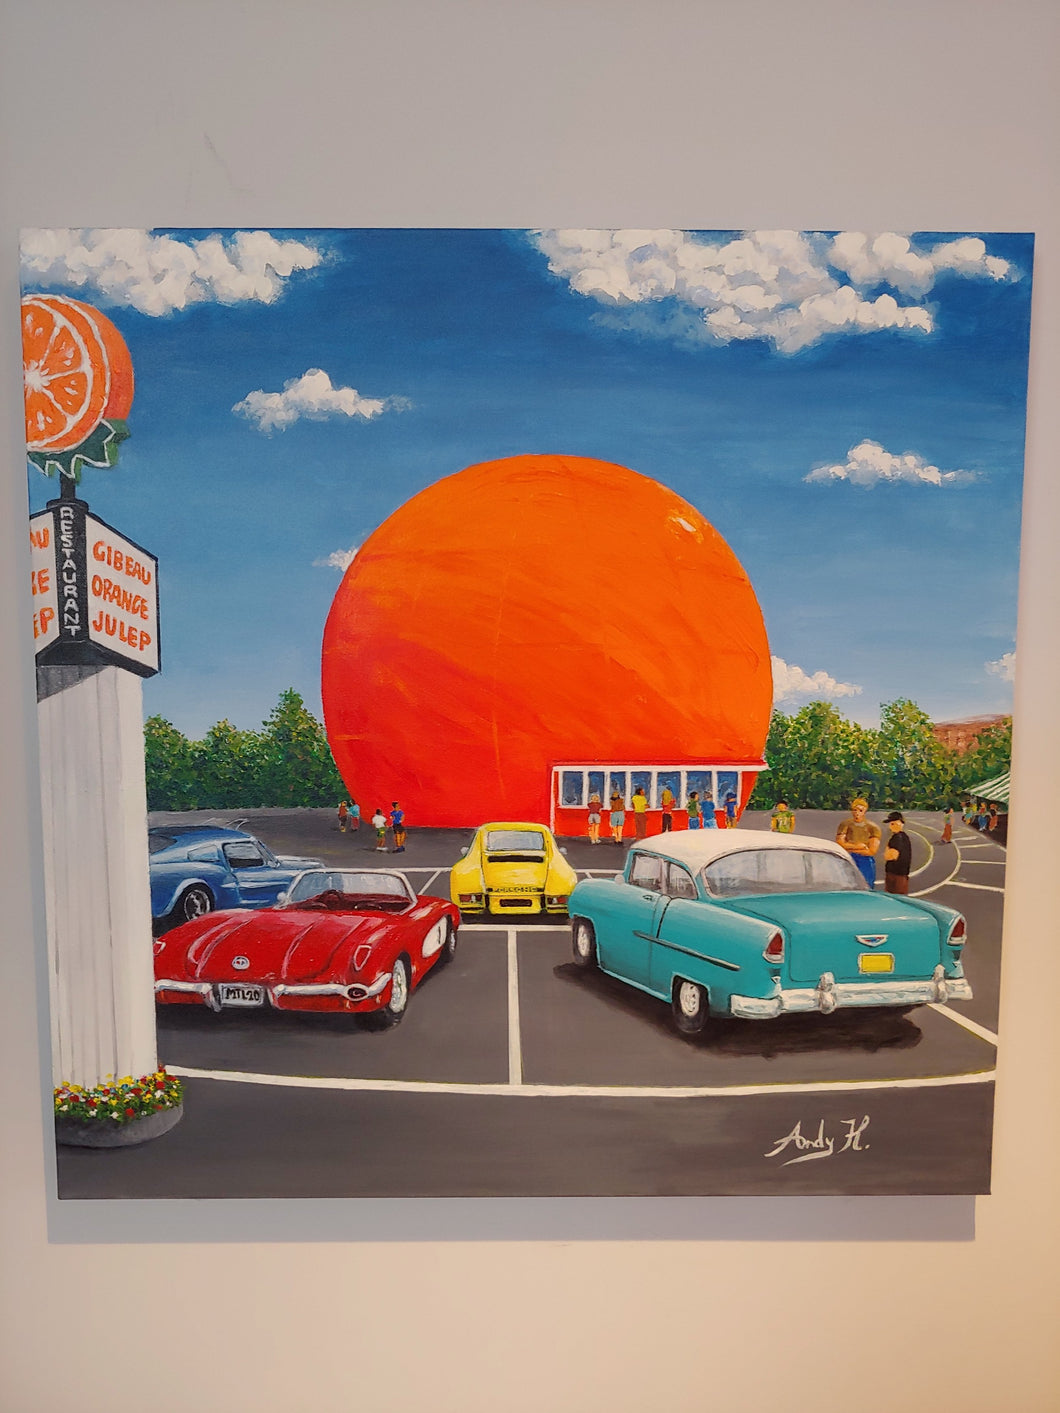 MONTREAL'S ORANGE JULEP / Original Canvas Painting - By Andy Habib